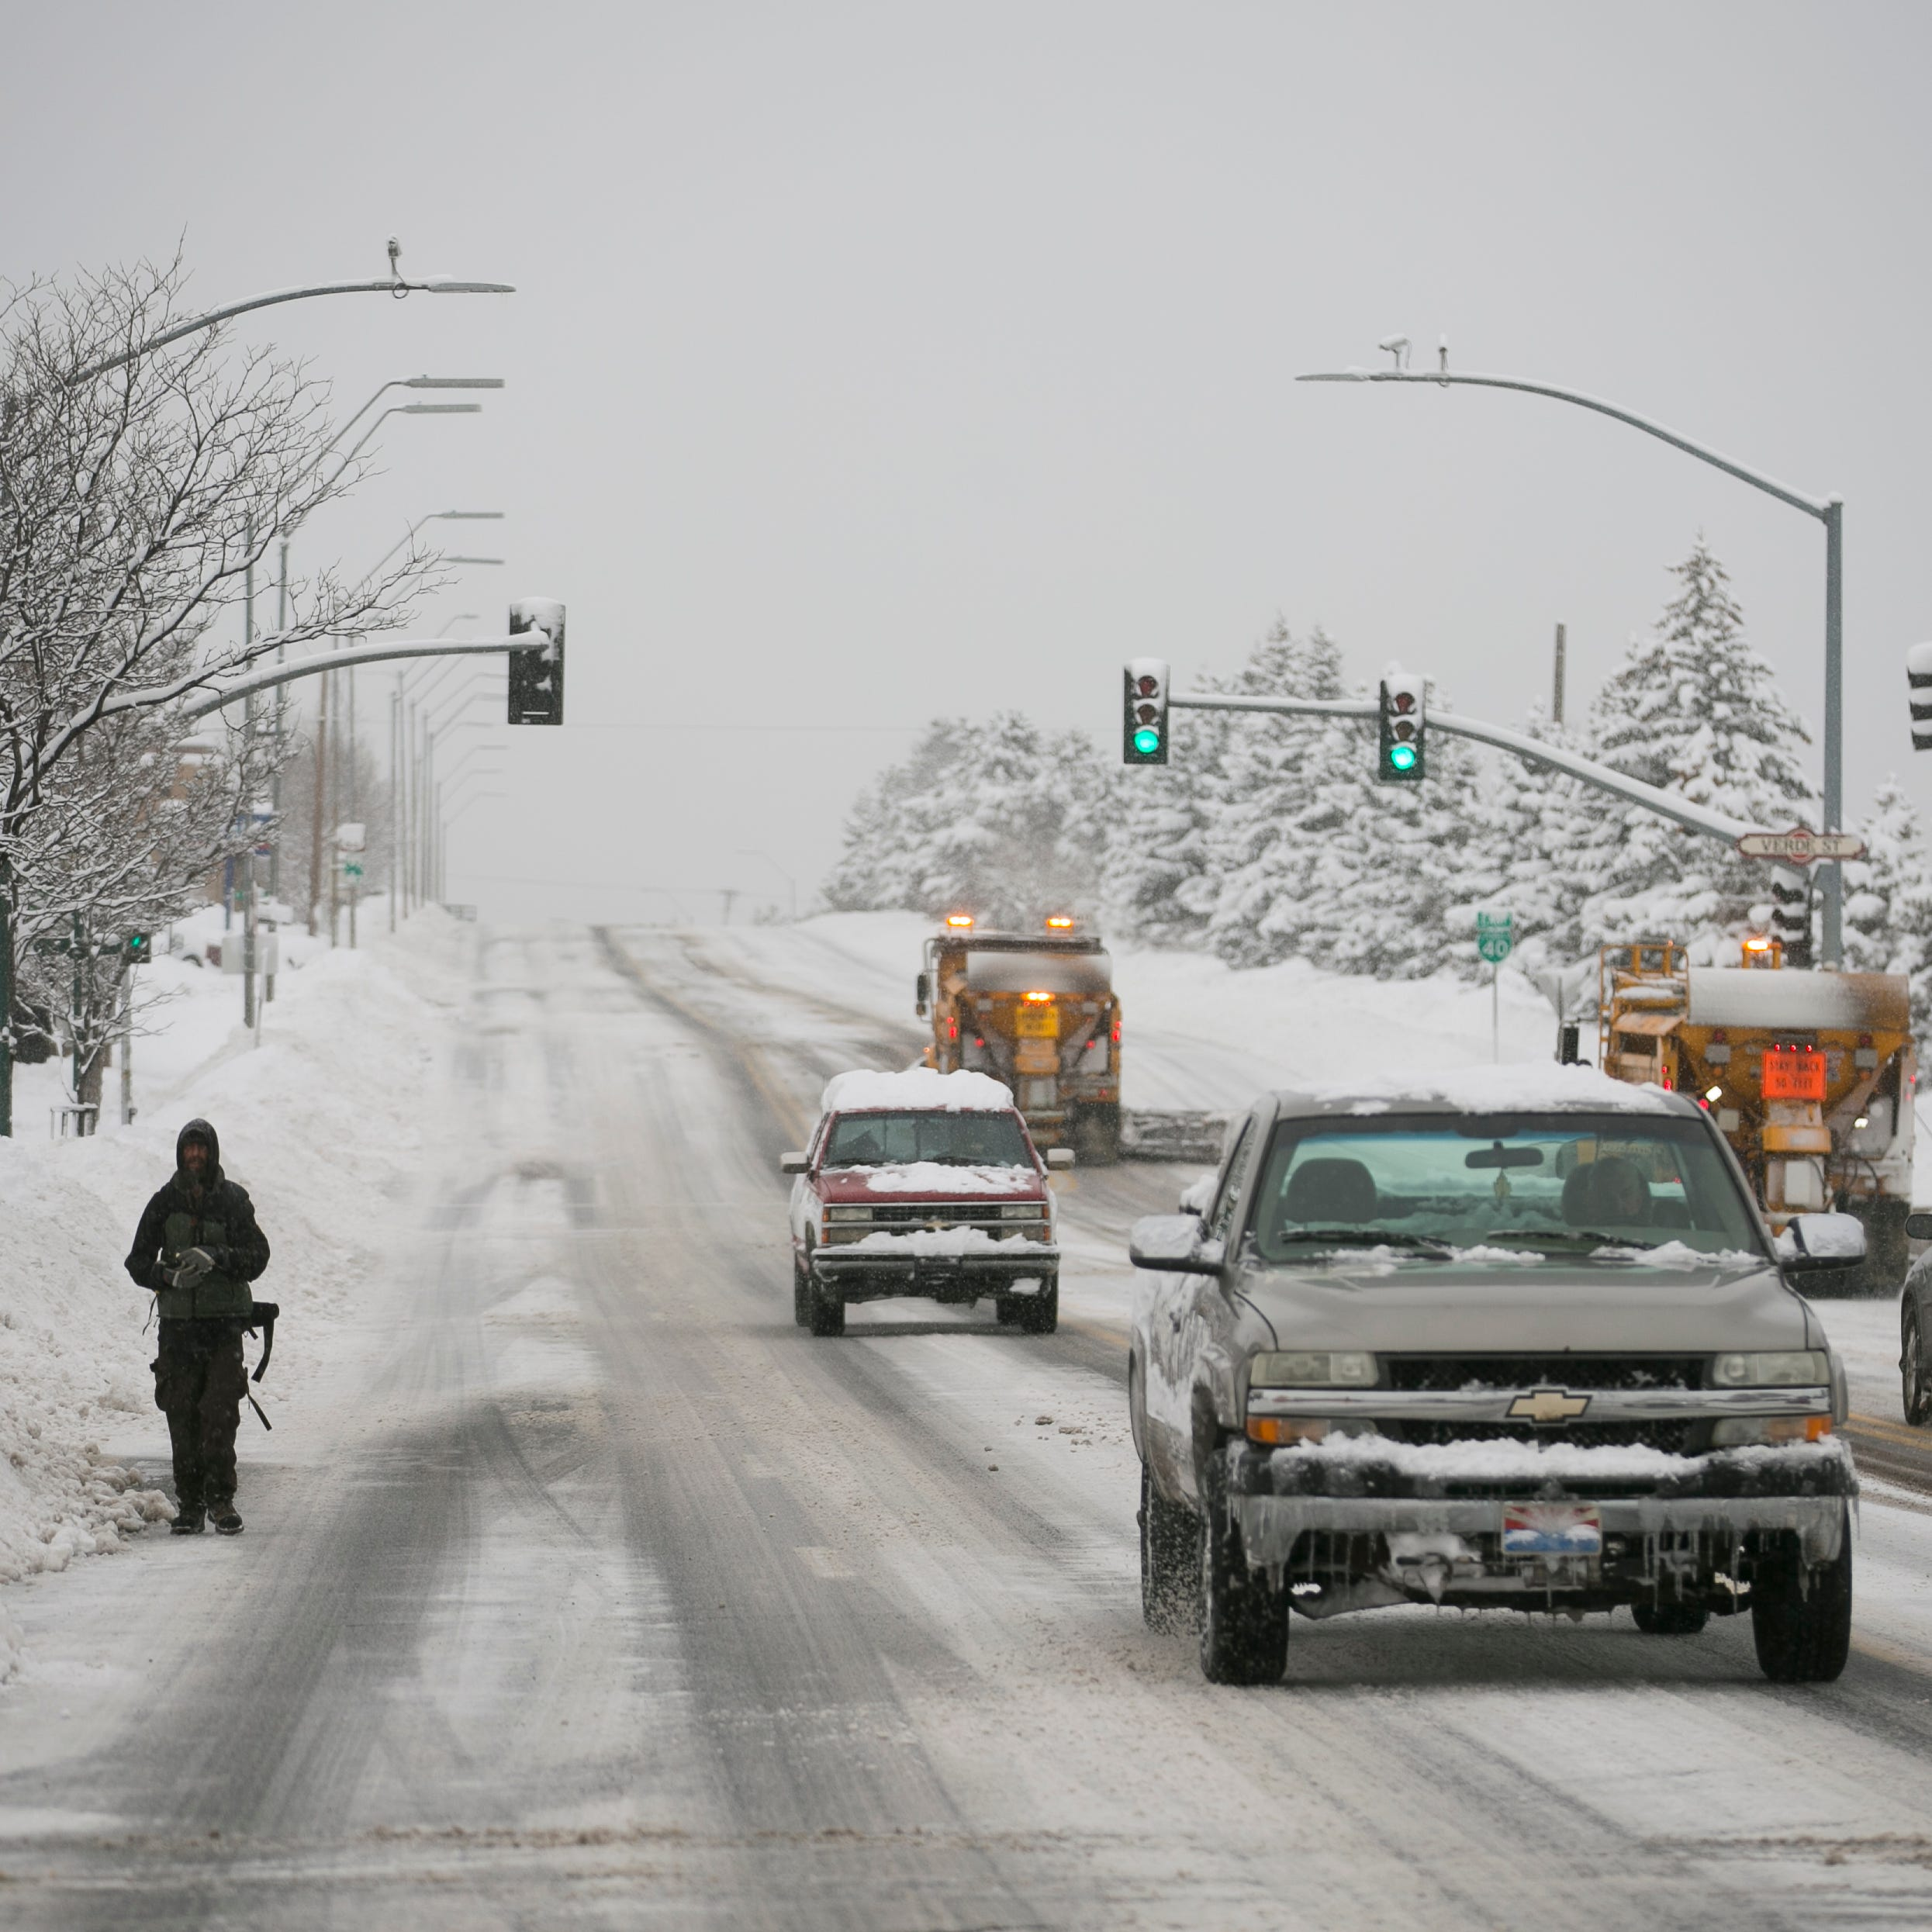 Debating a road trip to Northern Arizona for snow? Wait, experts say